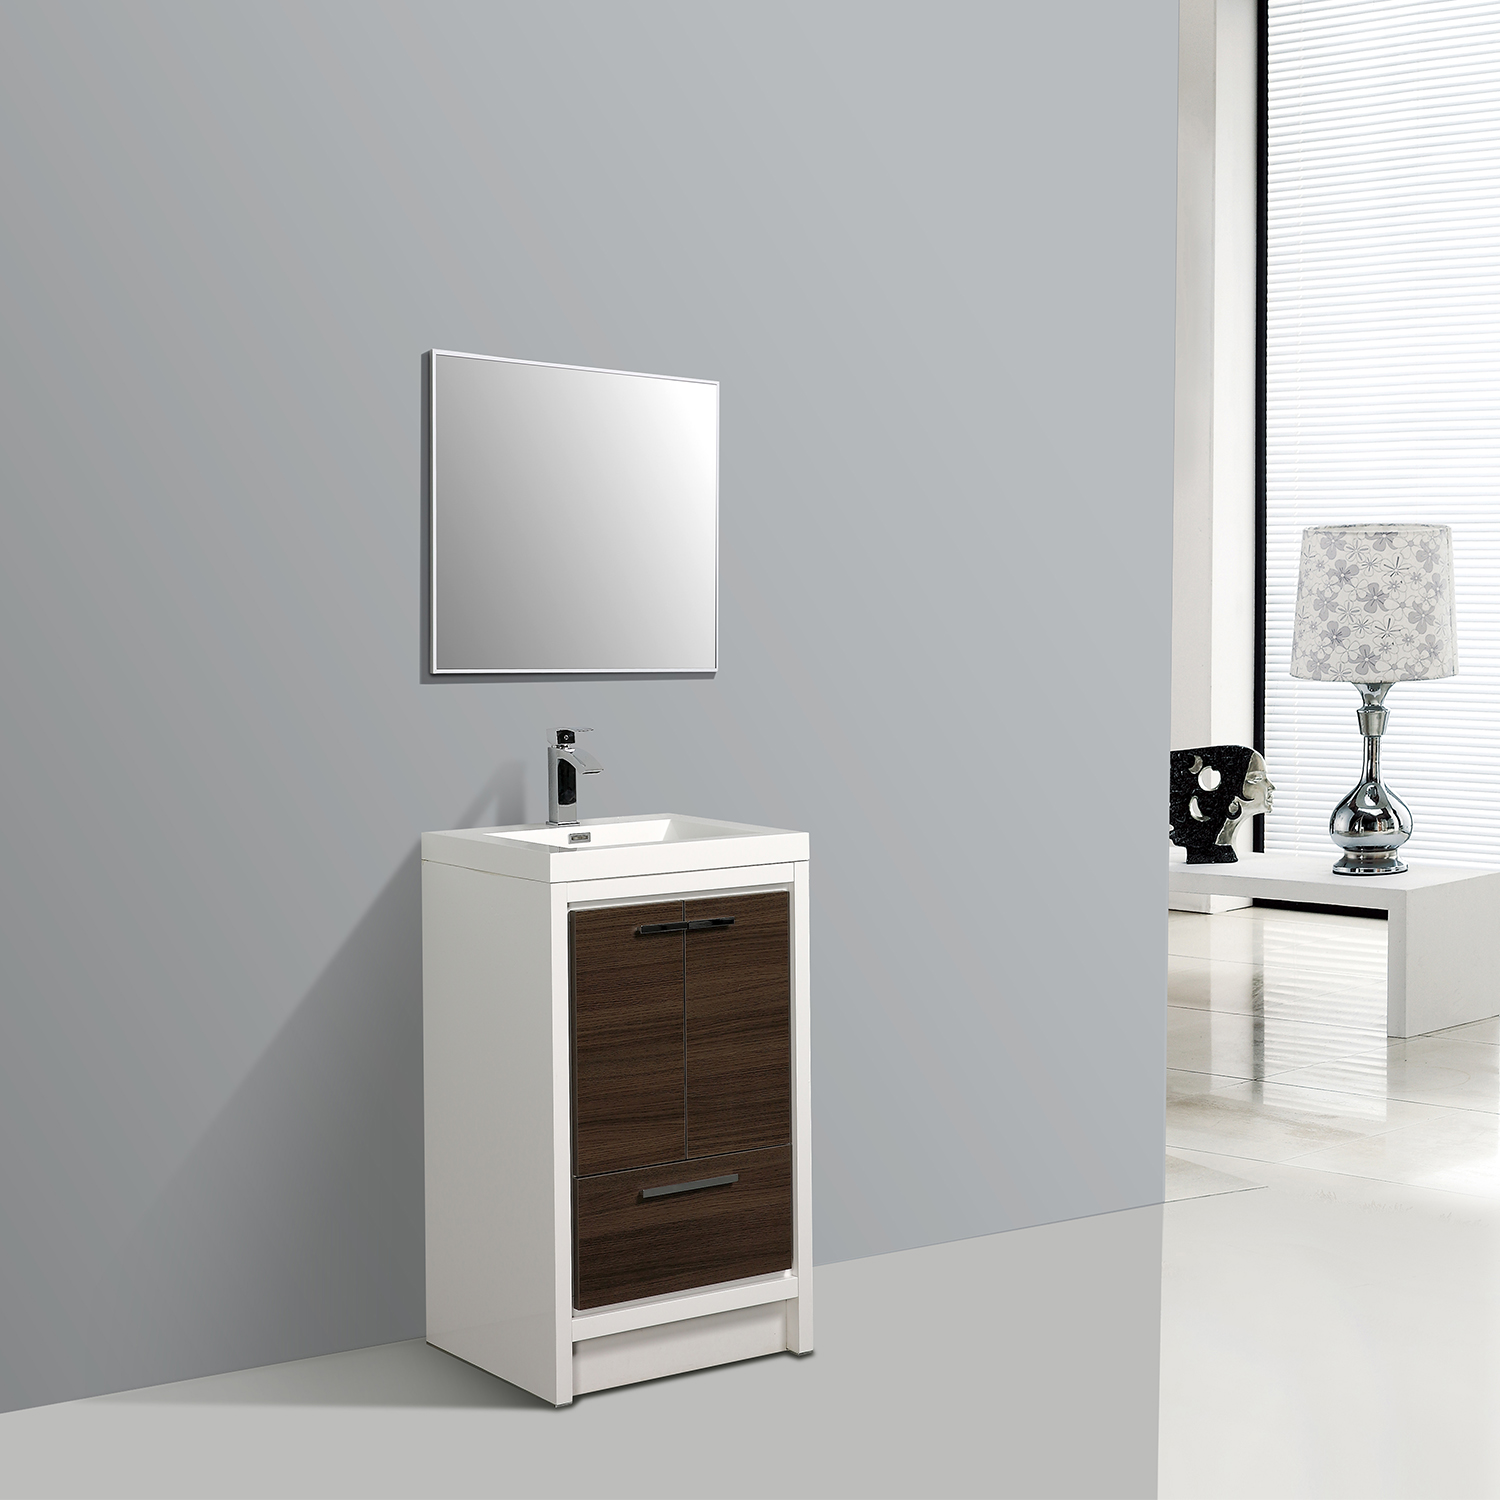 EVVN765 24GOK WH A Main - Eviva Grace 24 in. Gray Oak and White Bathroom Vanity with White Integrated Acrylic Countertop